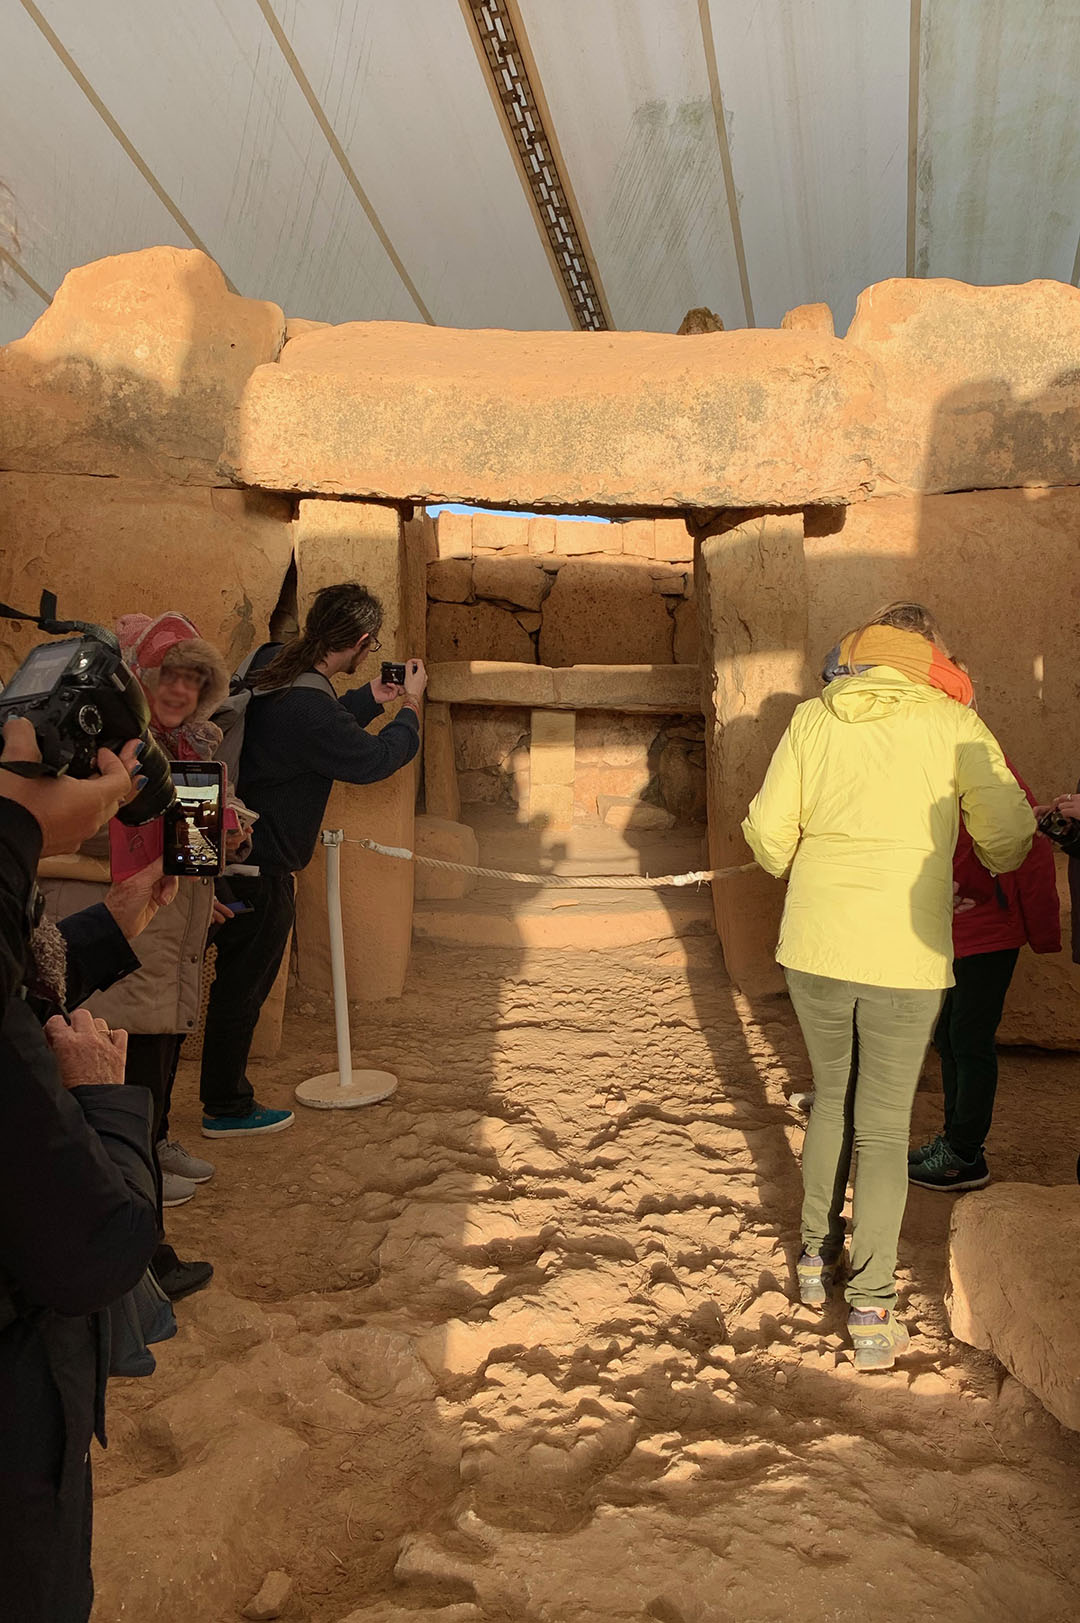 Watching the spring equinox sunrise flow through the corridor and touch the altar at Mnajdra.